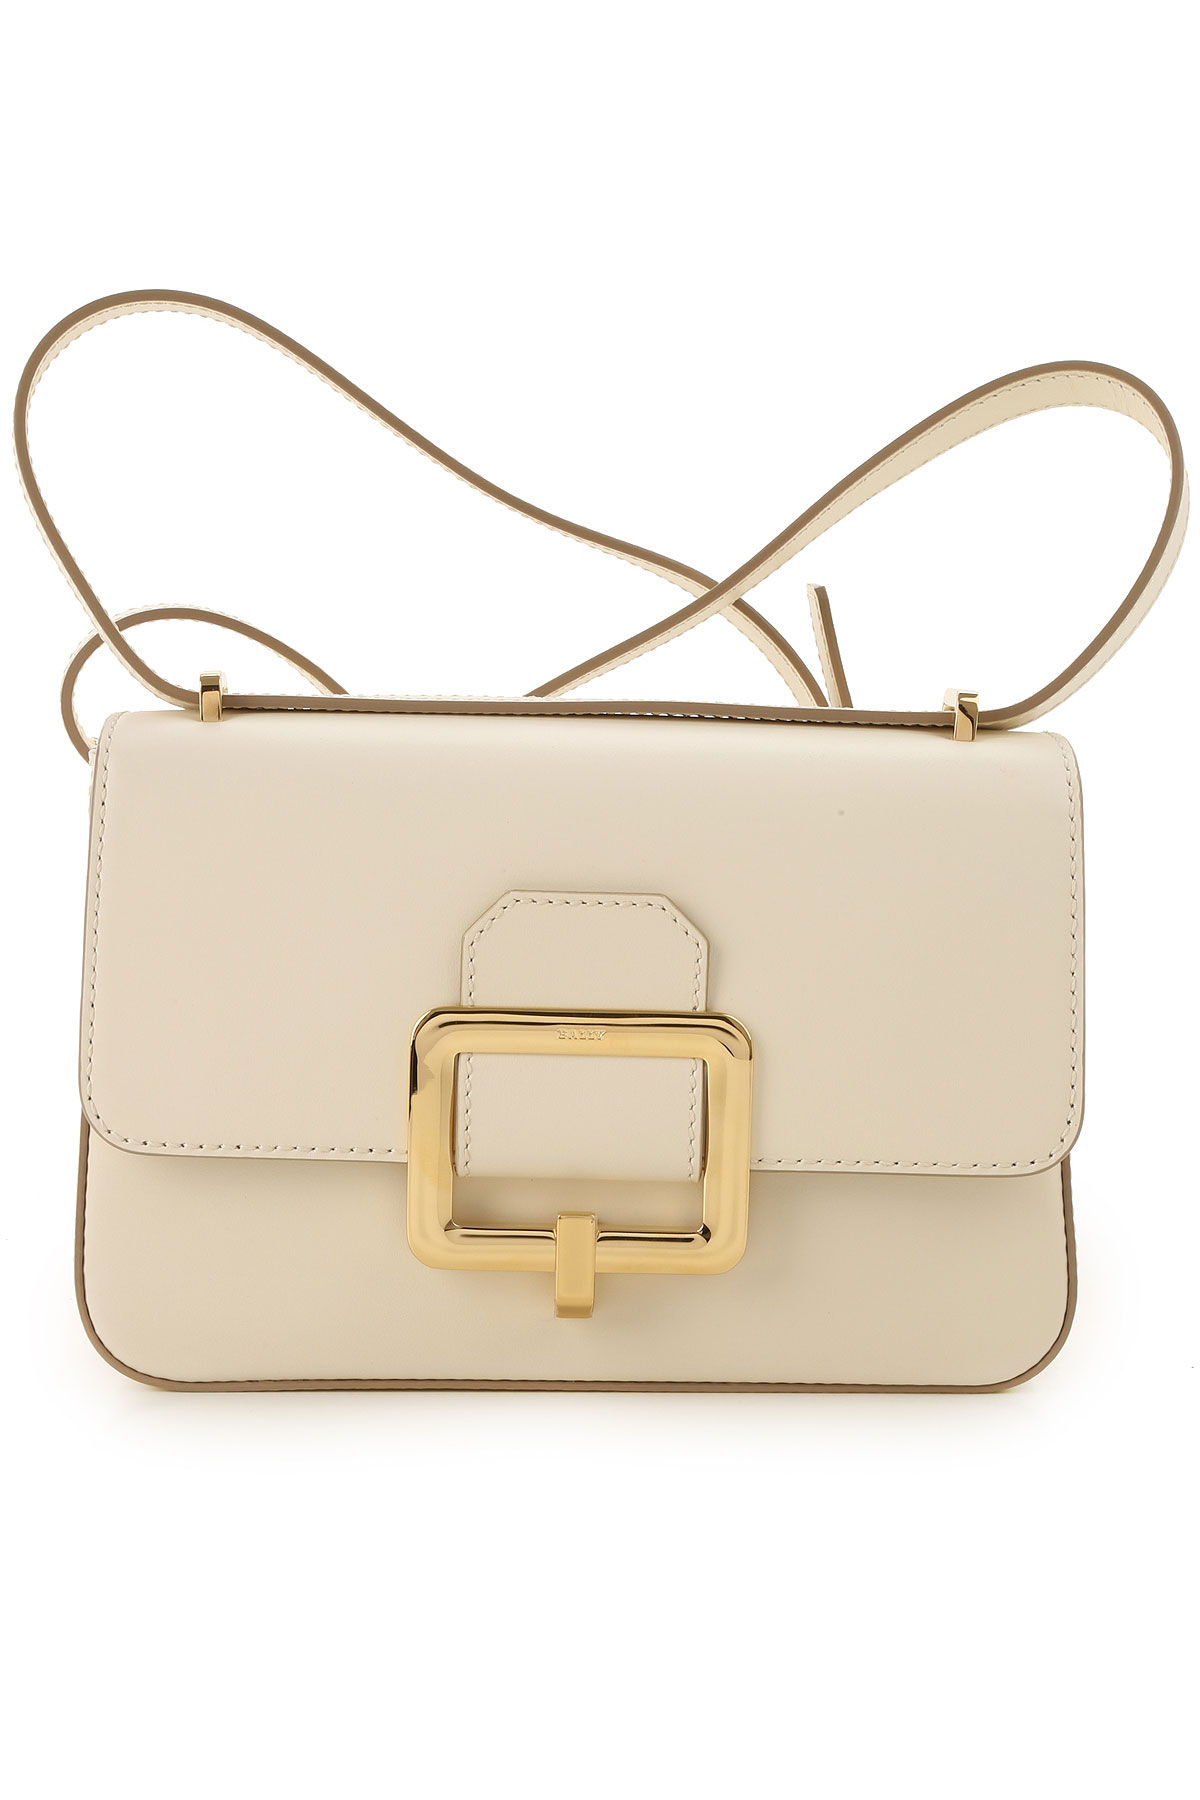 Bally Shoulder Bag for Women On Sale in Outlet, Bone, Leather, 2019